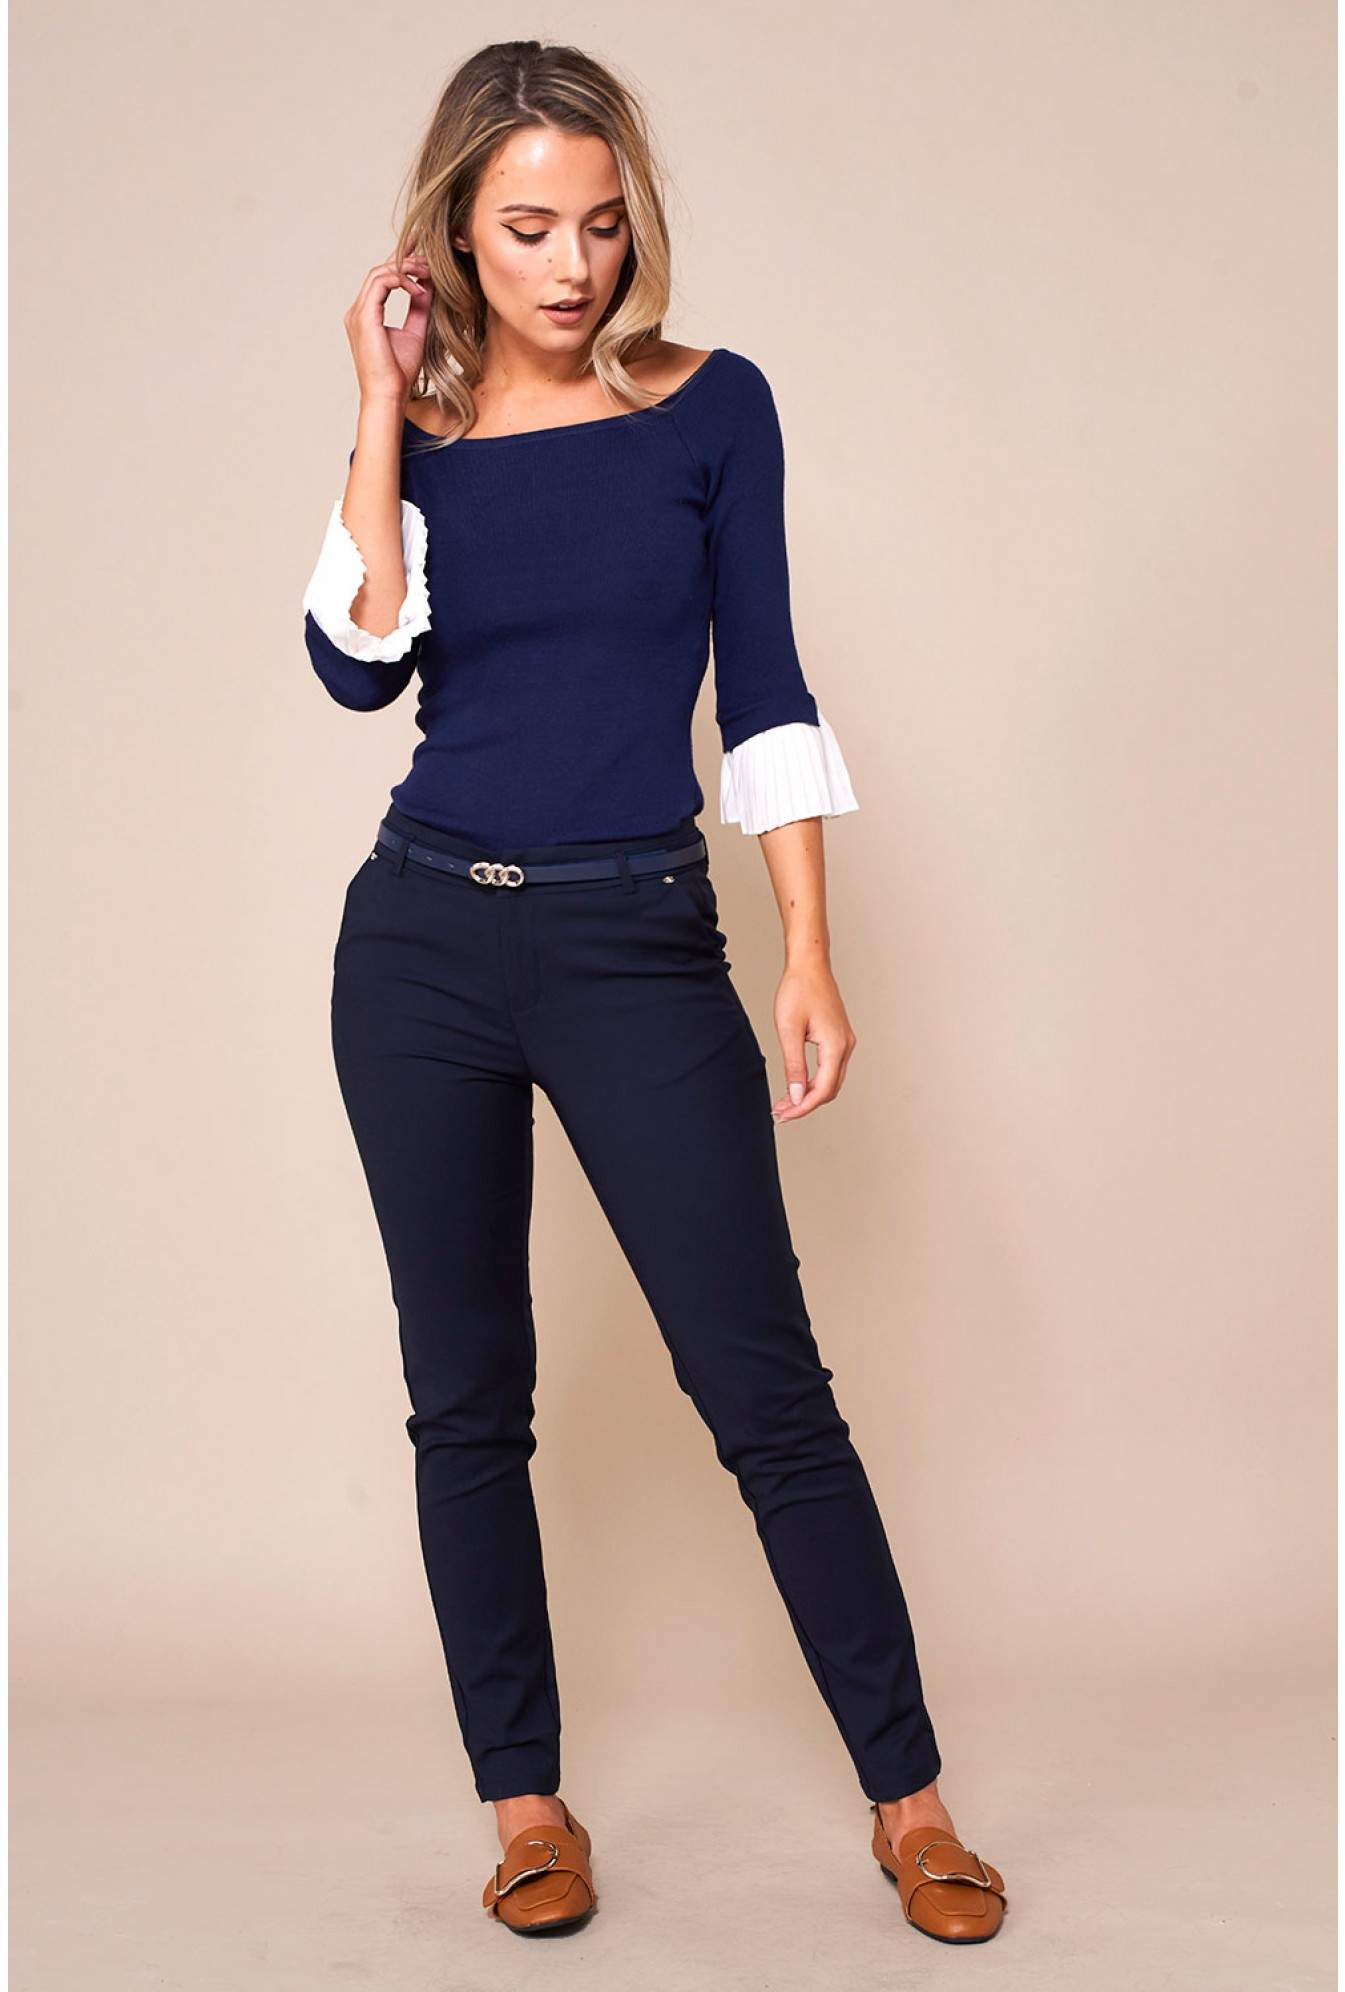 6185971030a7d More Views. Gordon Pleated Sleeve Bardot Top in Navy